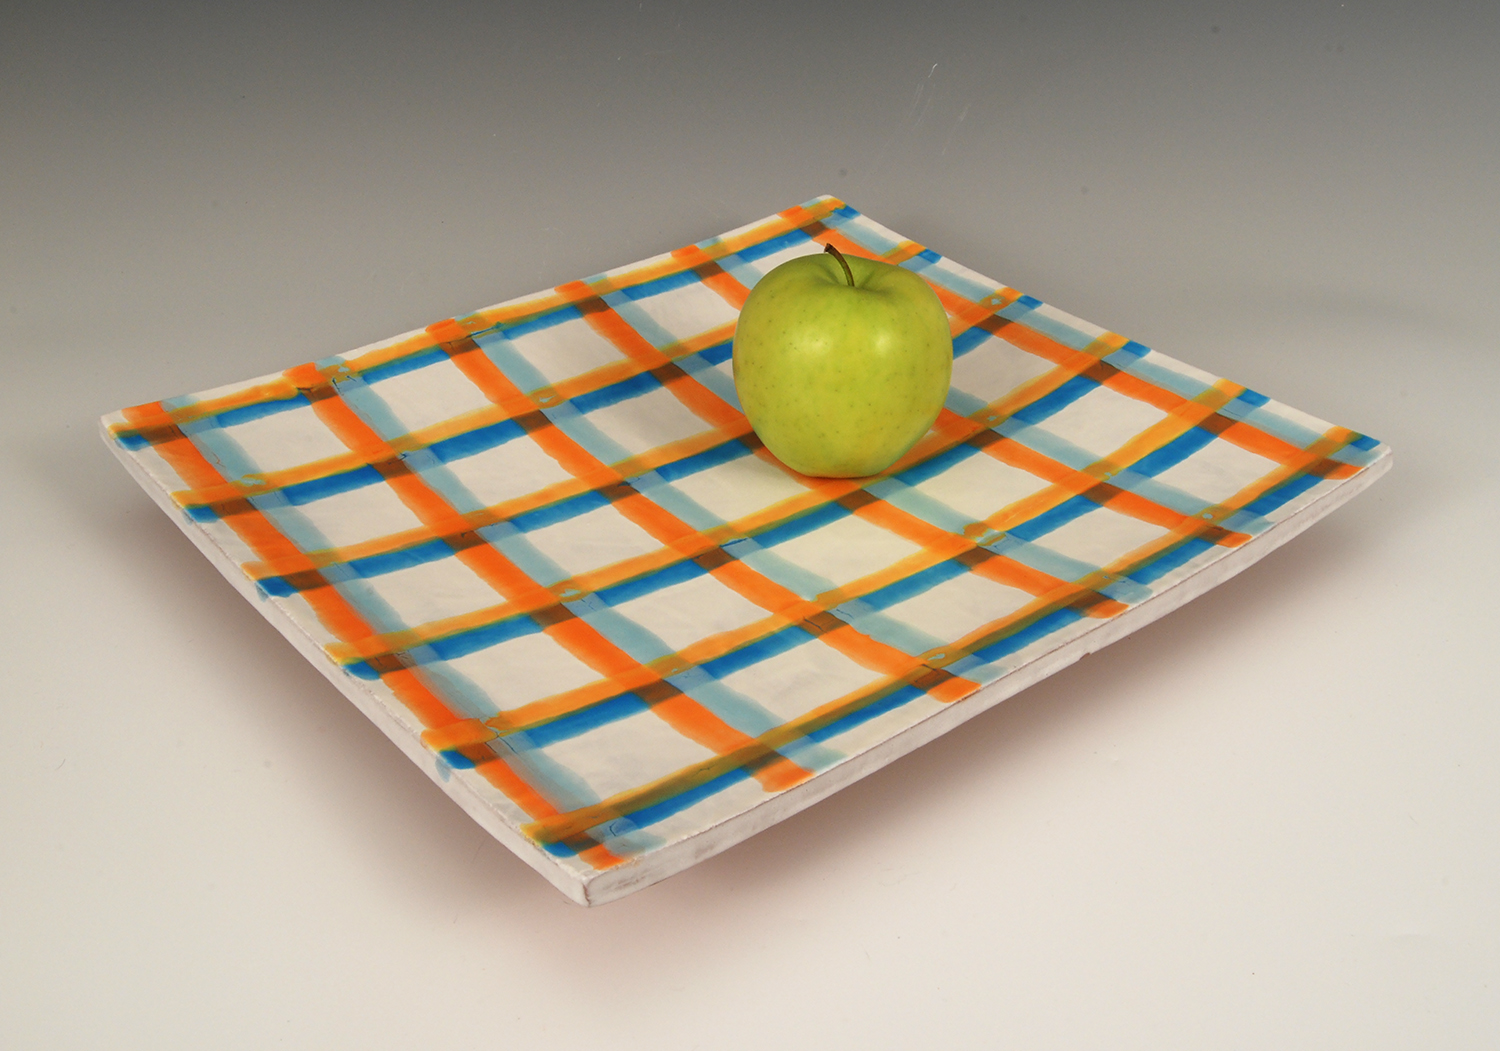 Four_Color_Grid_1_w_apple.jpg